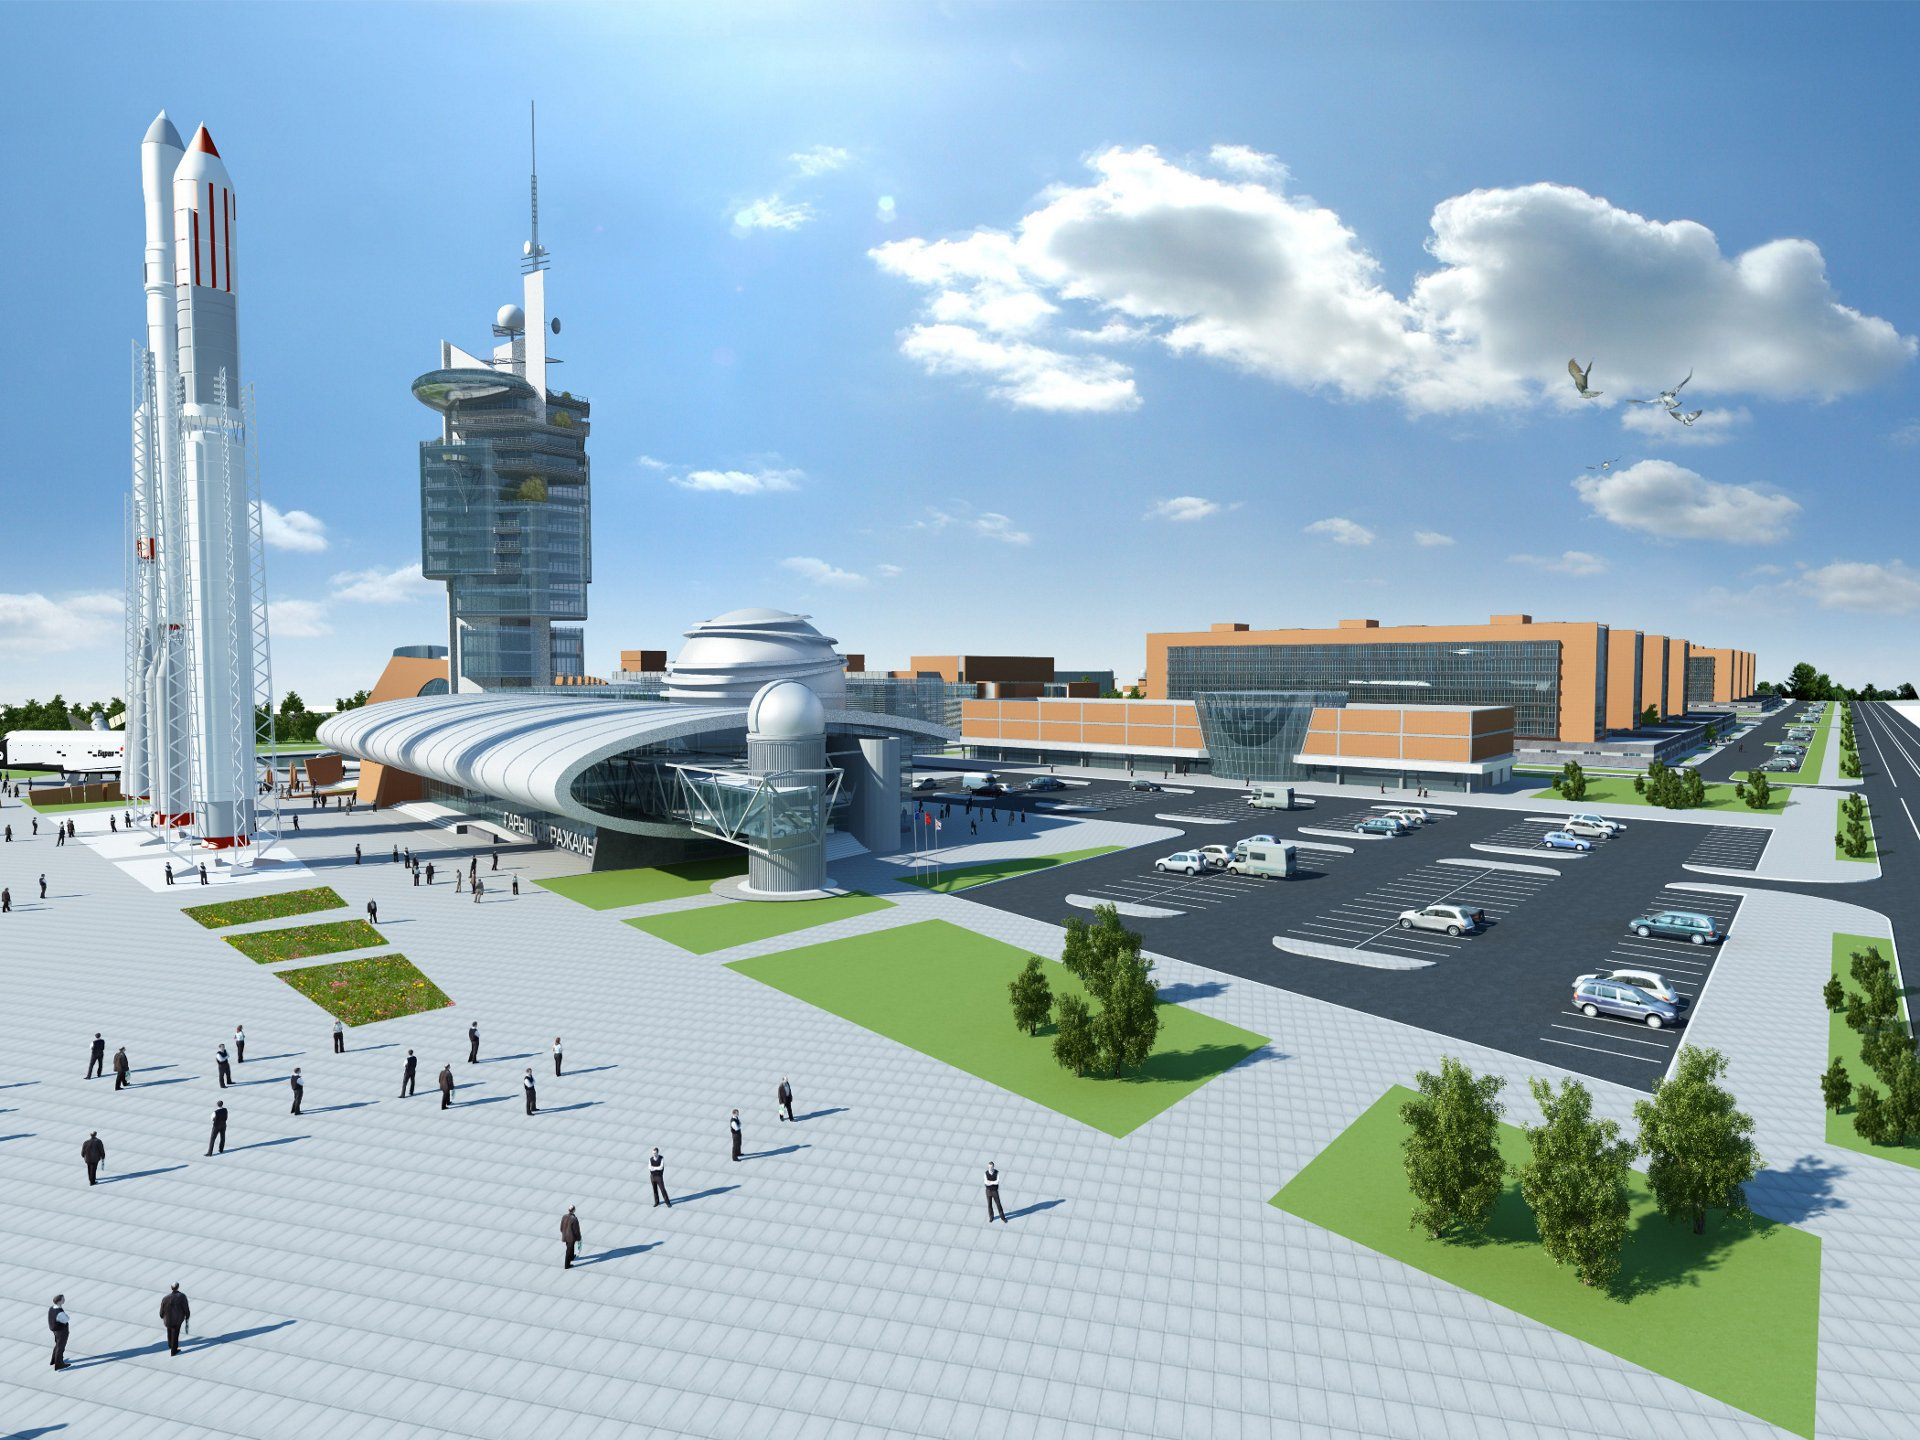 A computer rendering of a futuristic spacecraft test centre developed with guidance and support from Airbus.